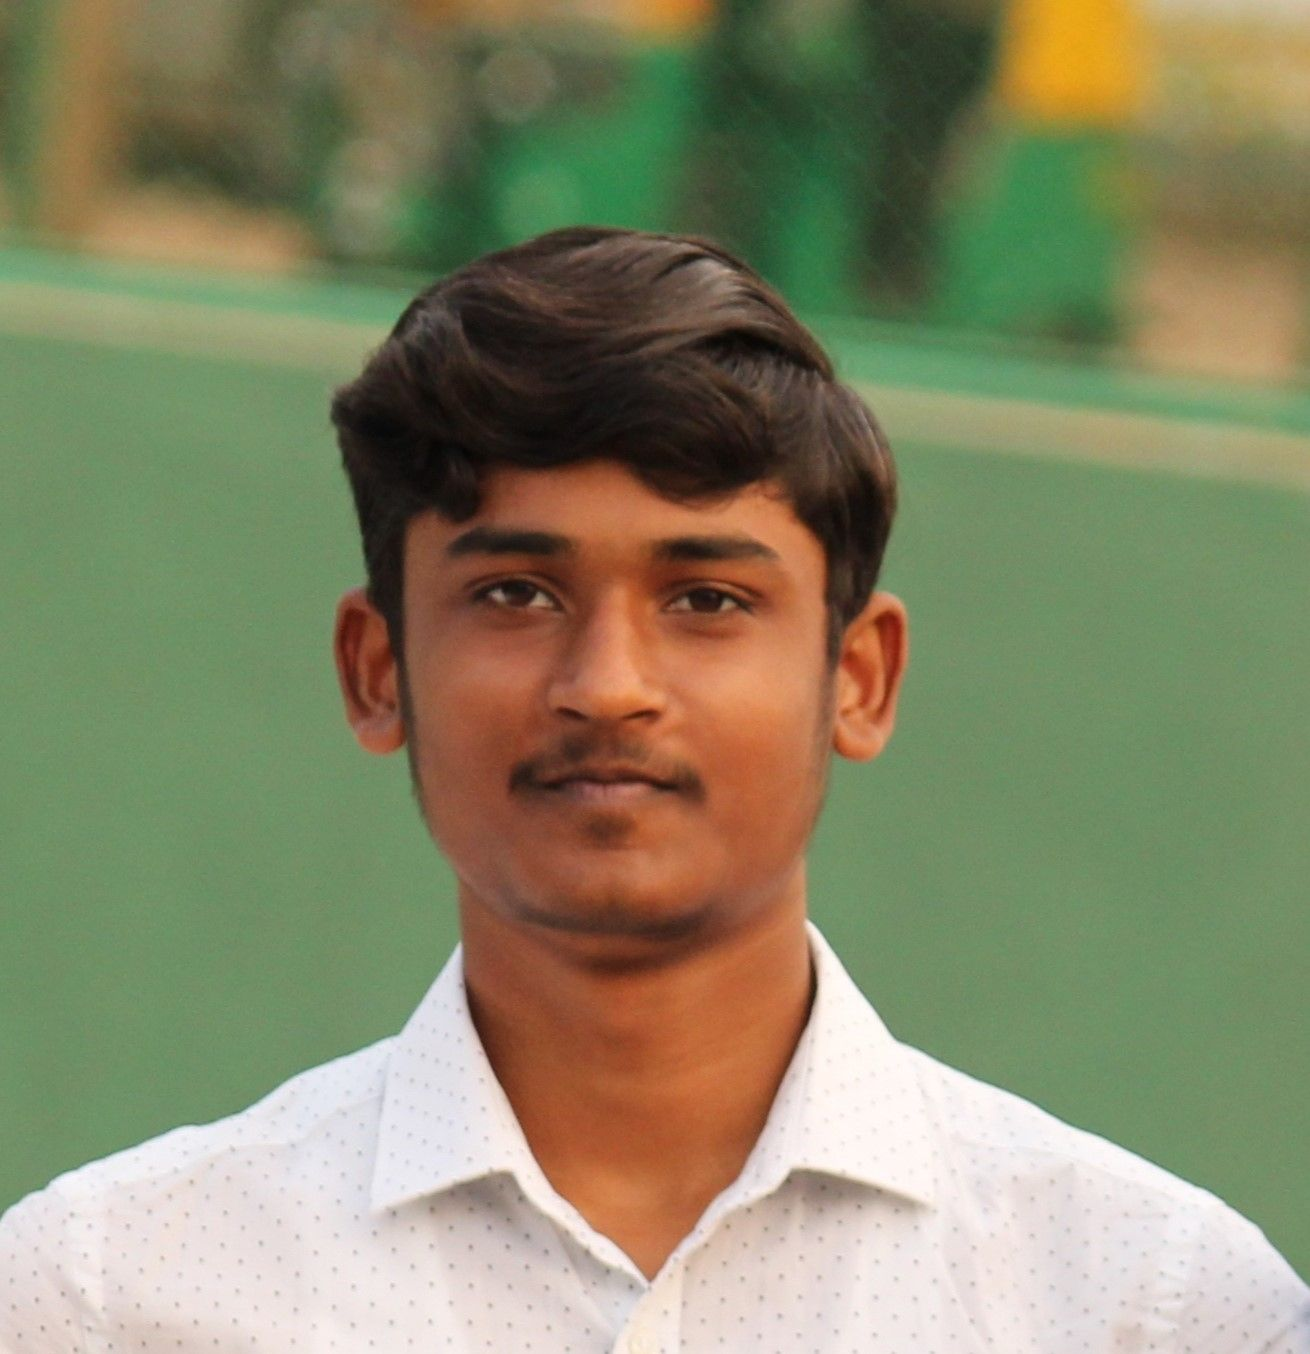 Aswin Barath Hacker Noon profile picture